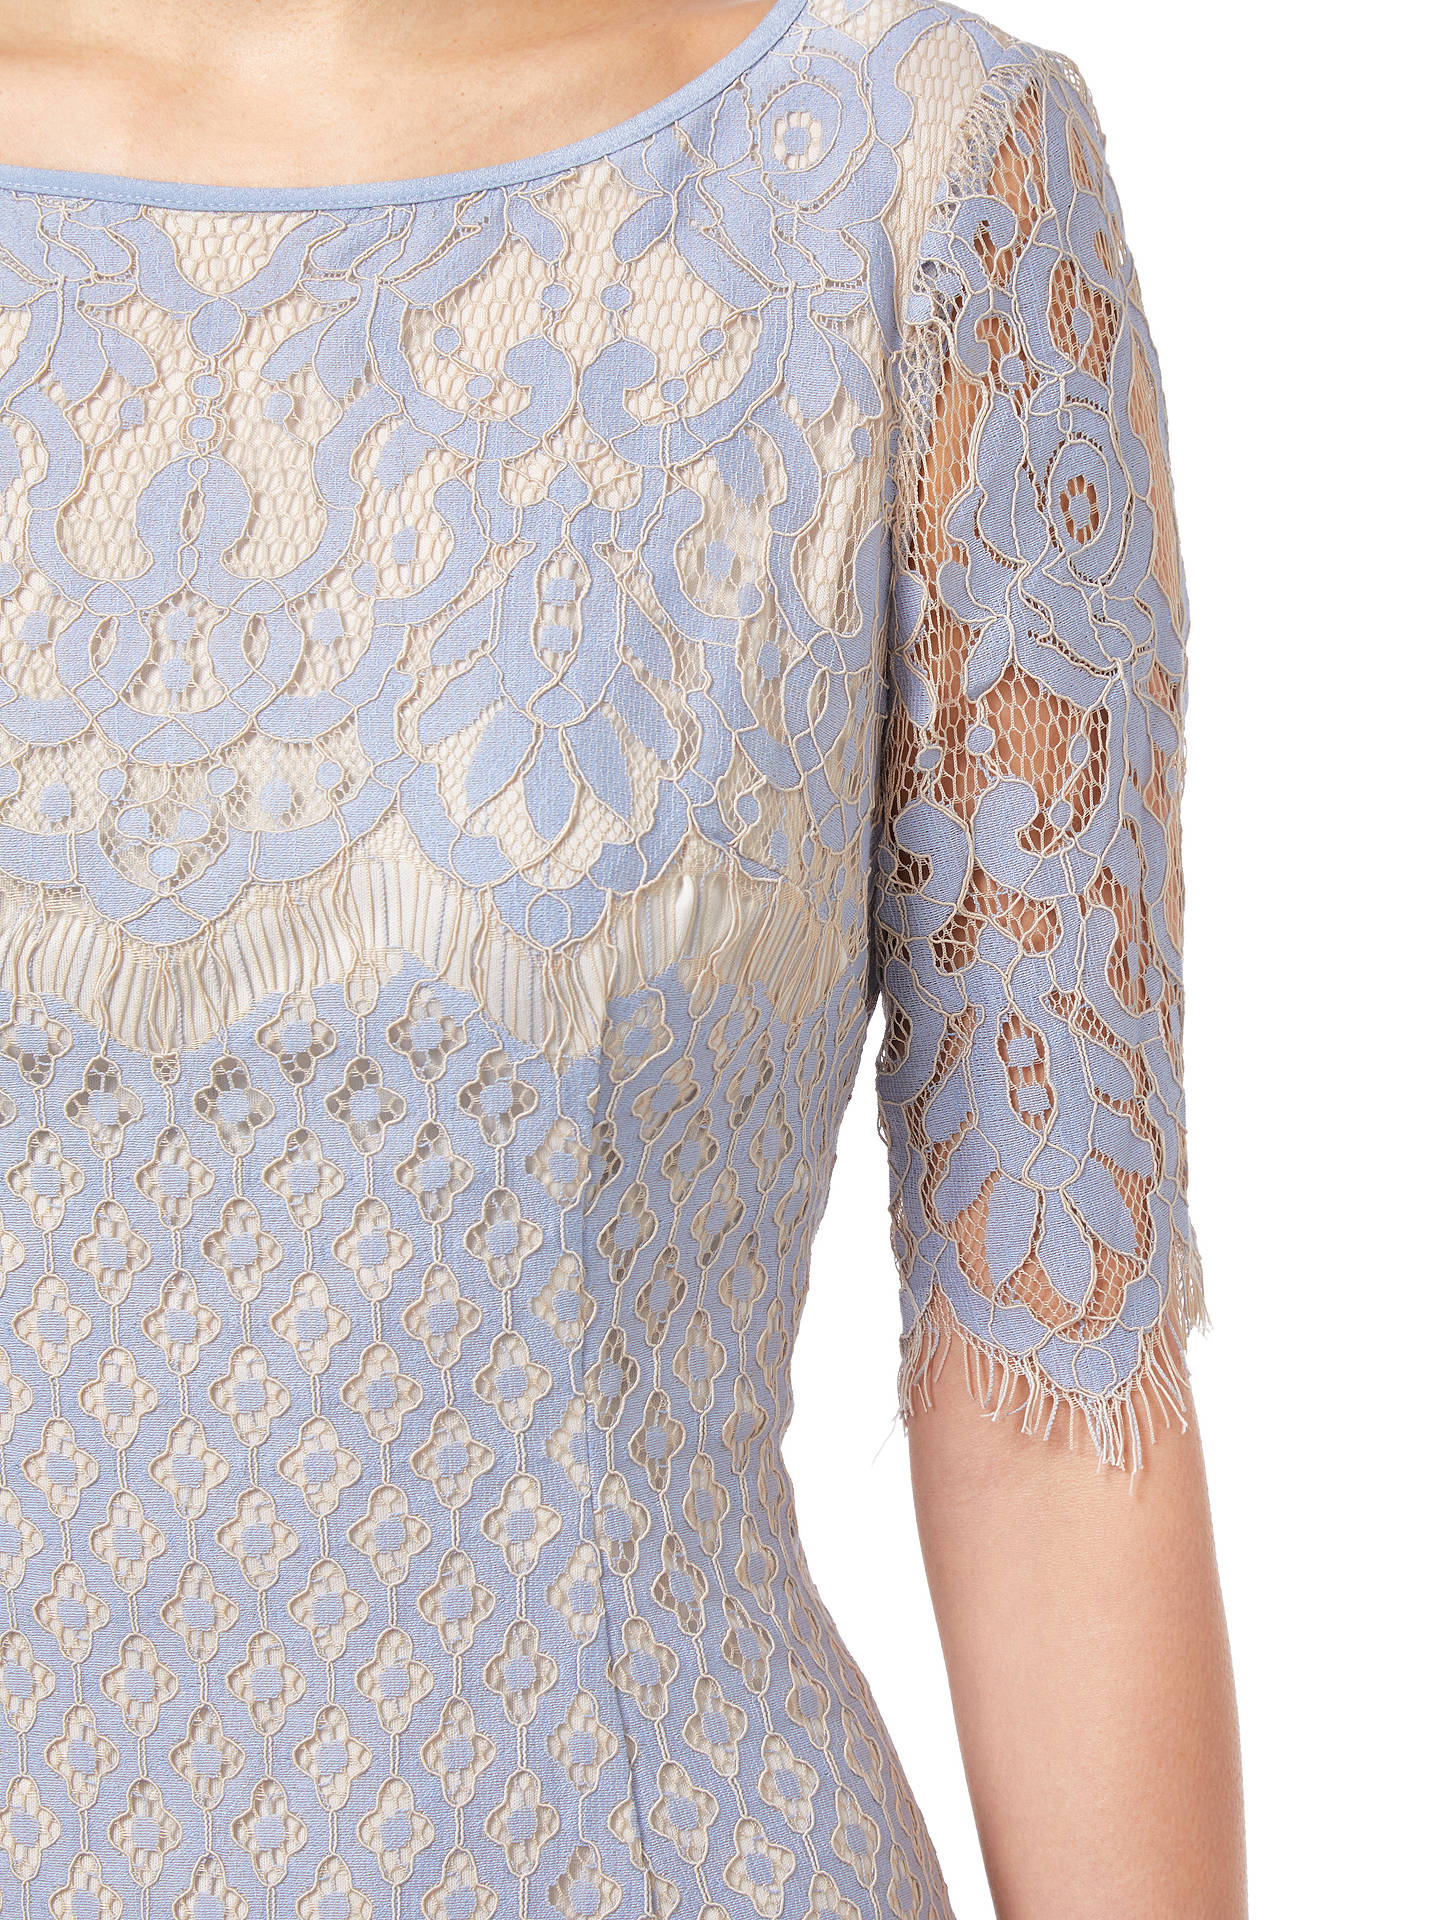 Buy Adrianna Papell Georgia Lace Dress, Multi, 8 Online at johnlewis.com